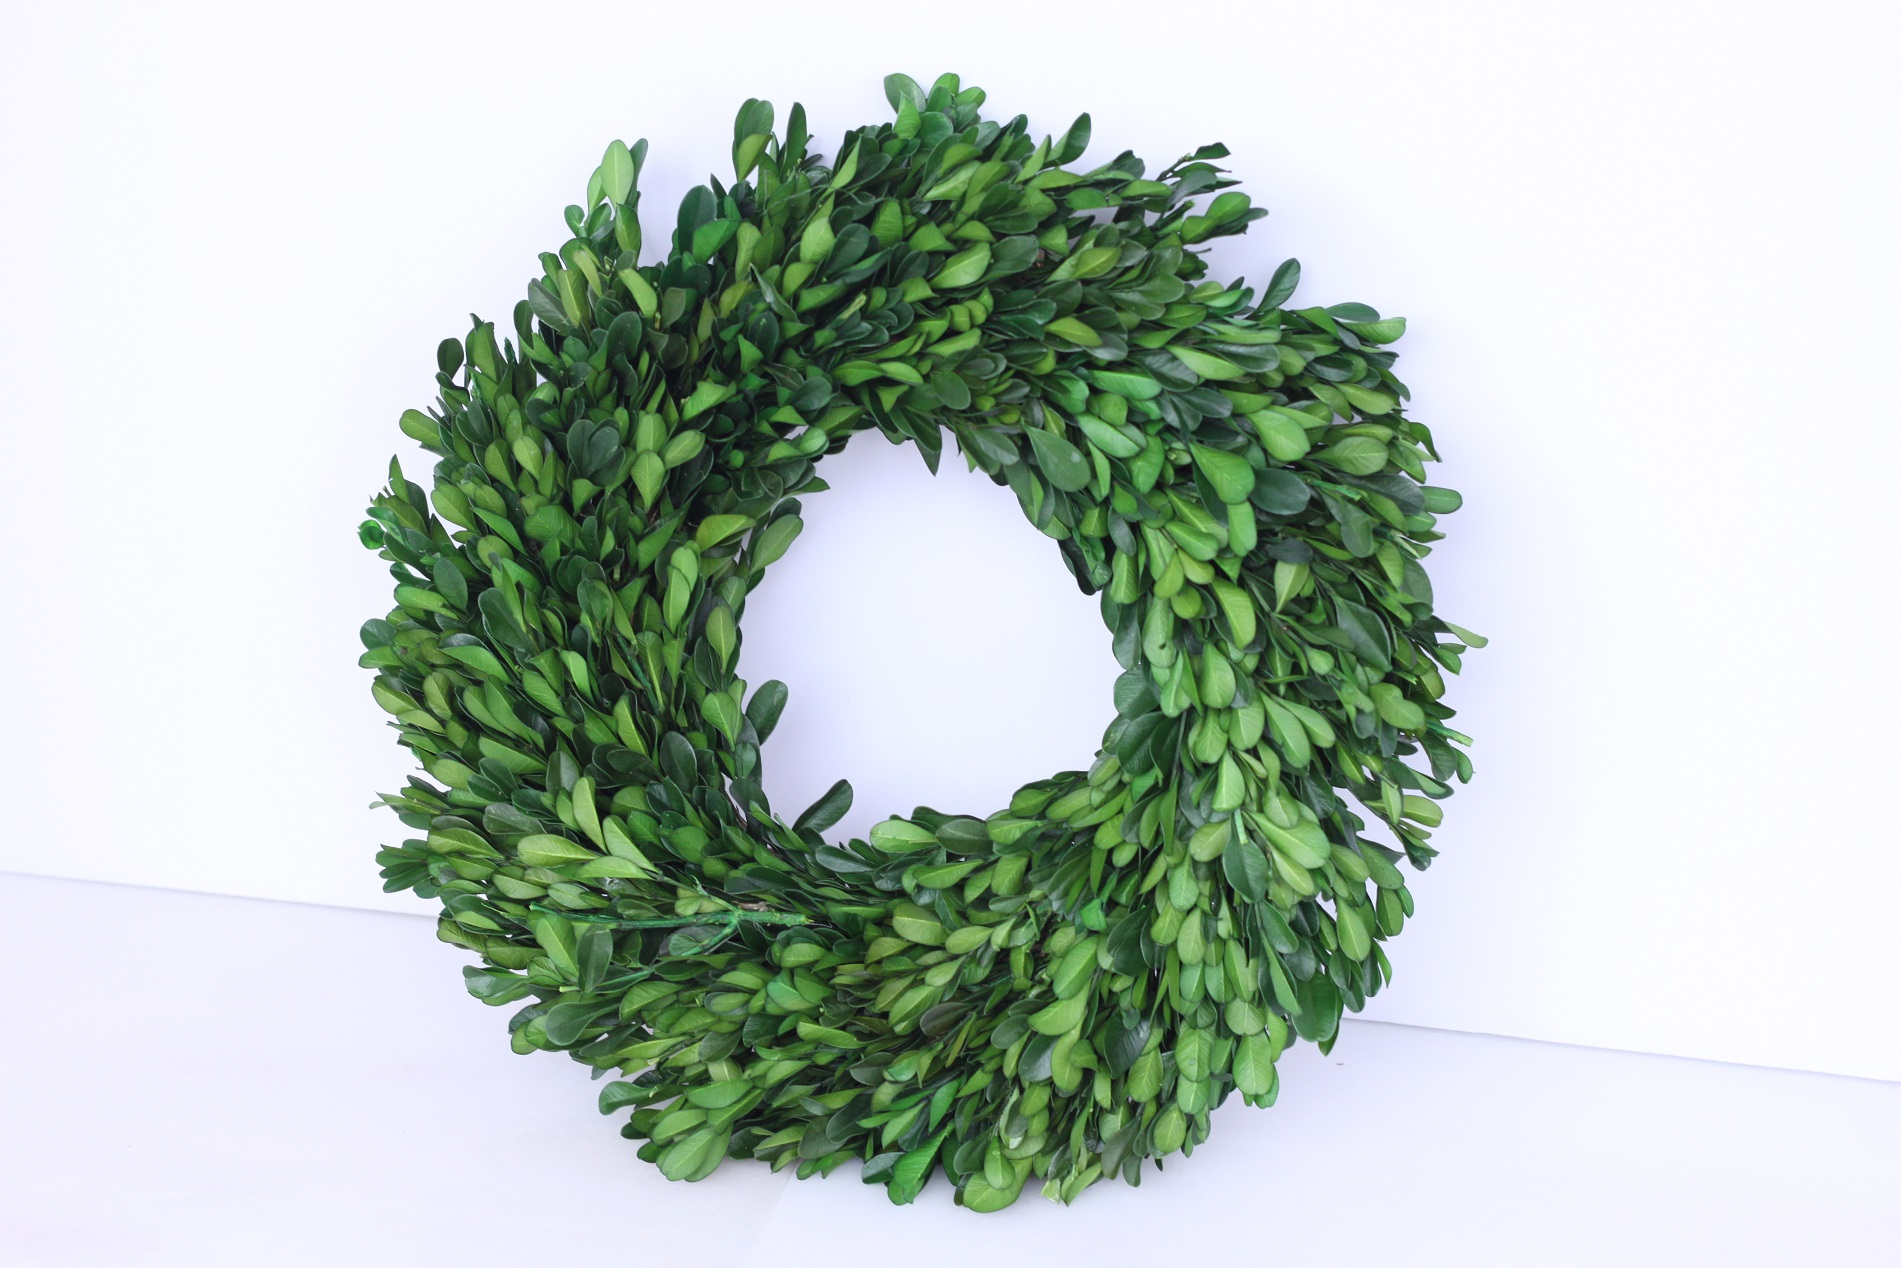 Copy of Boxwood Wreath Sm. $3/ea. Lrg. $6/ea.